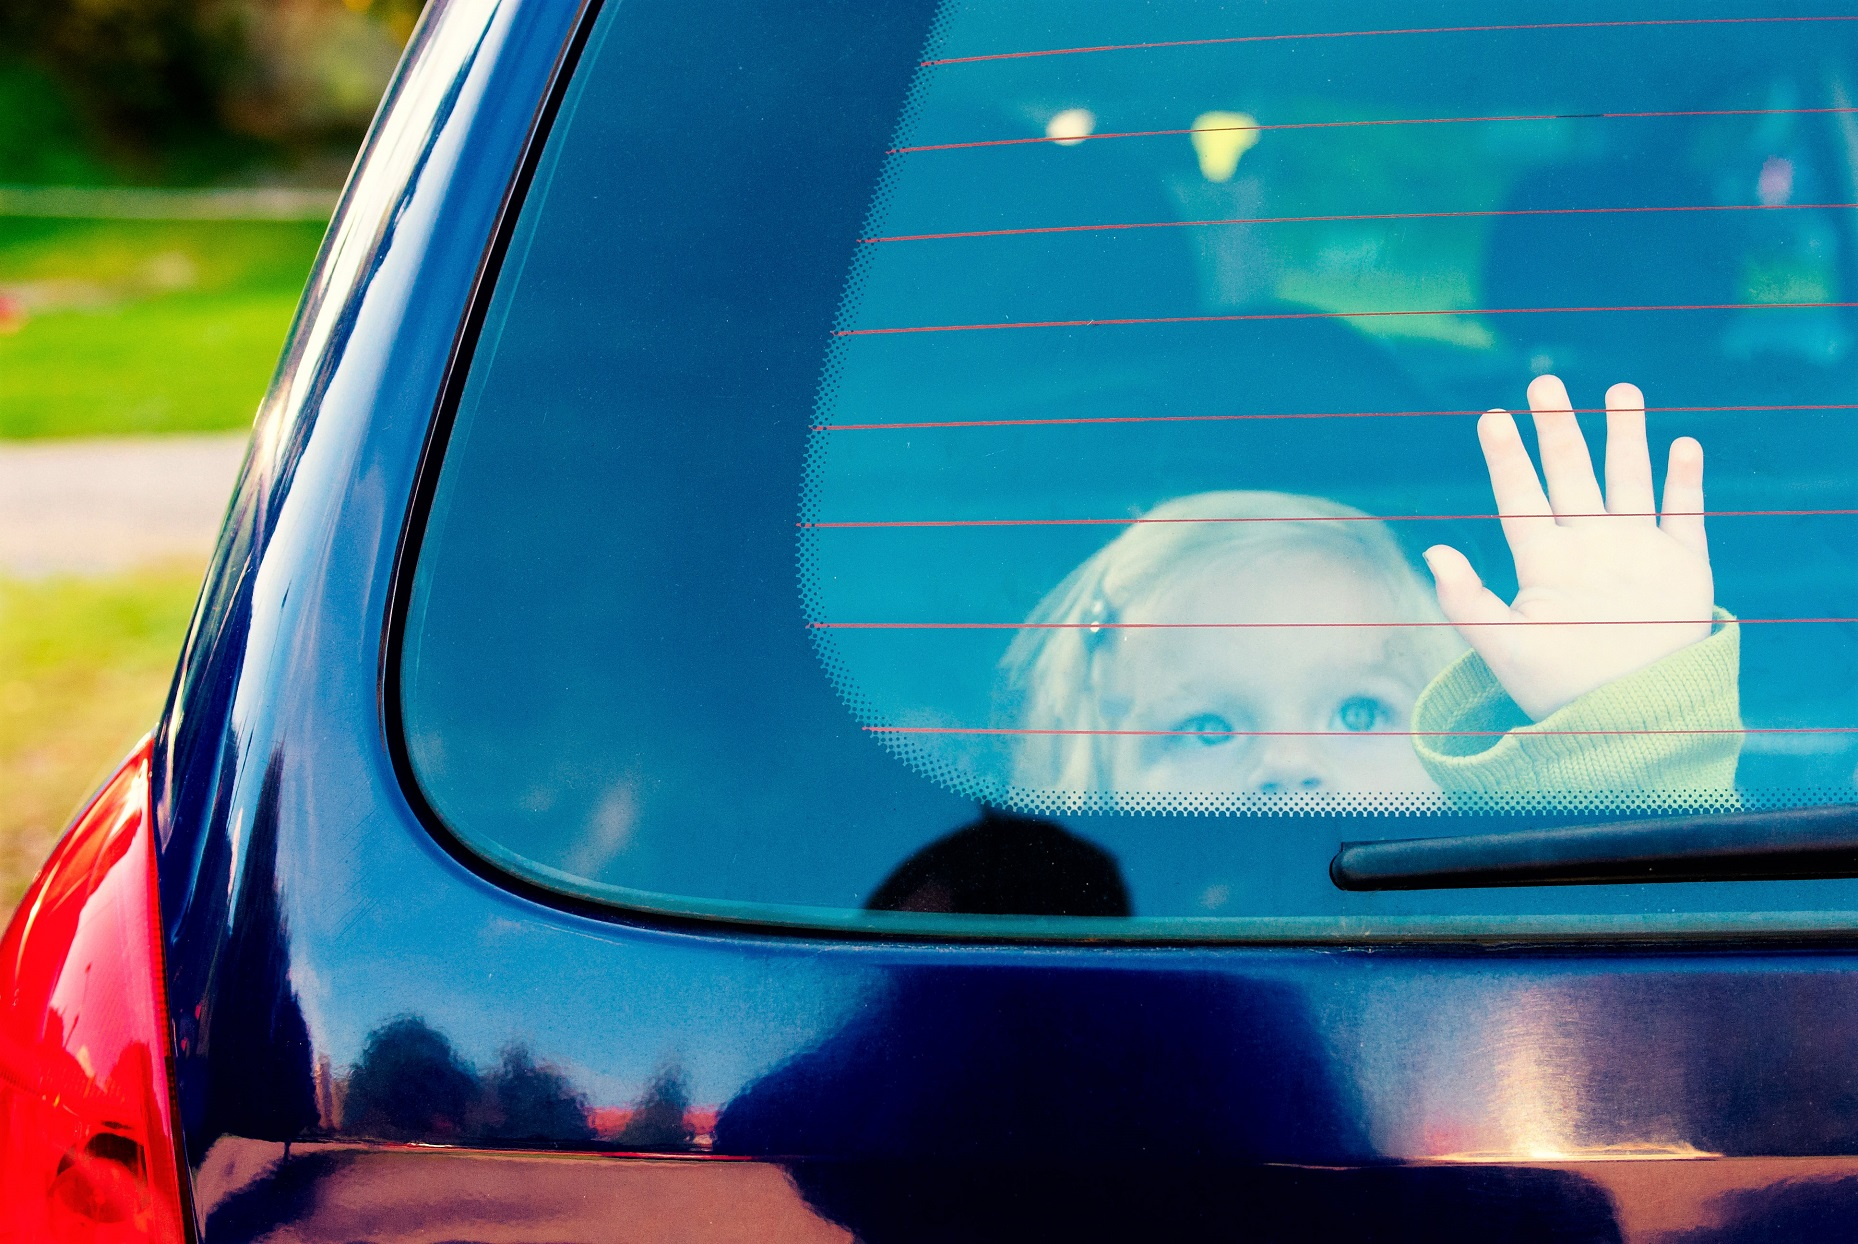 Little Girl in Car Alone Hand on Window